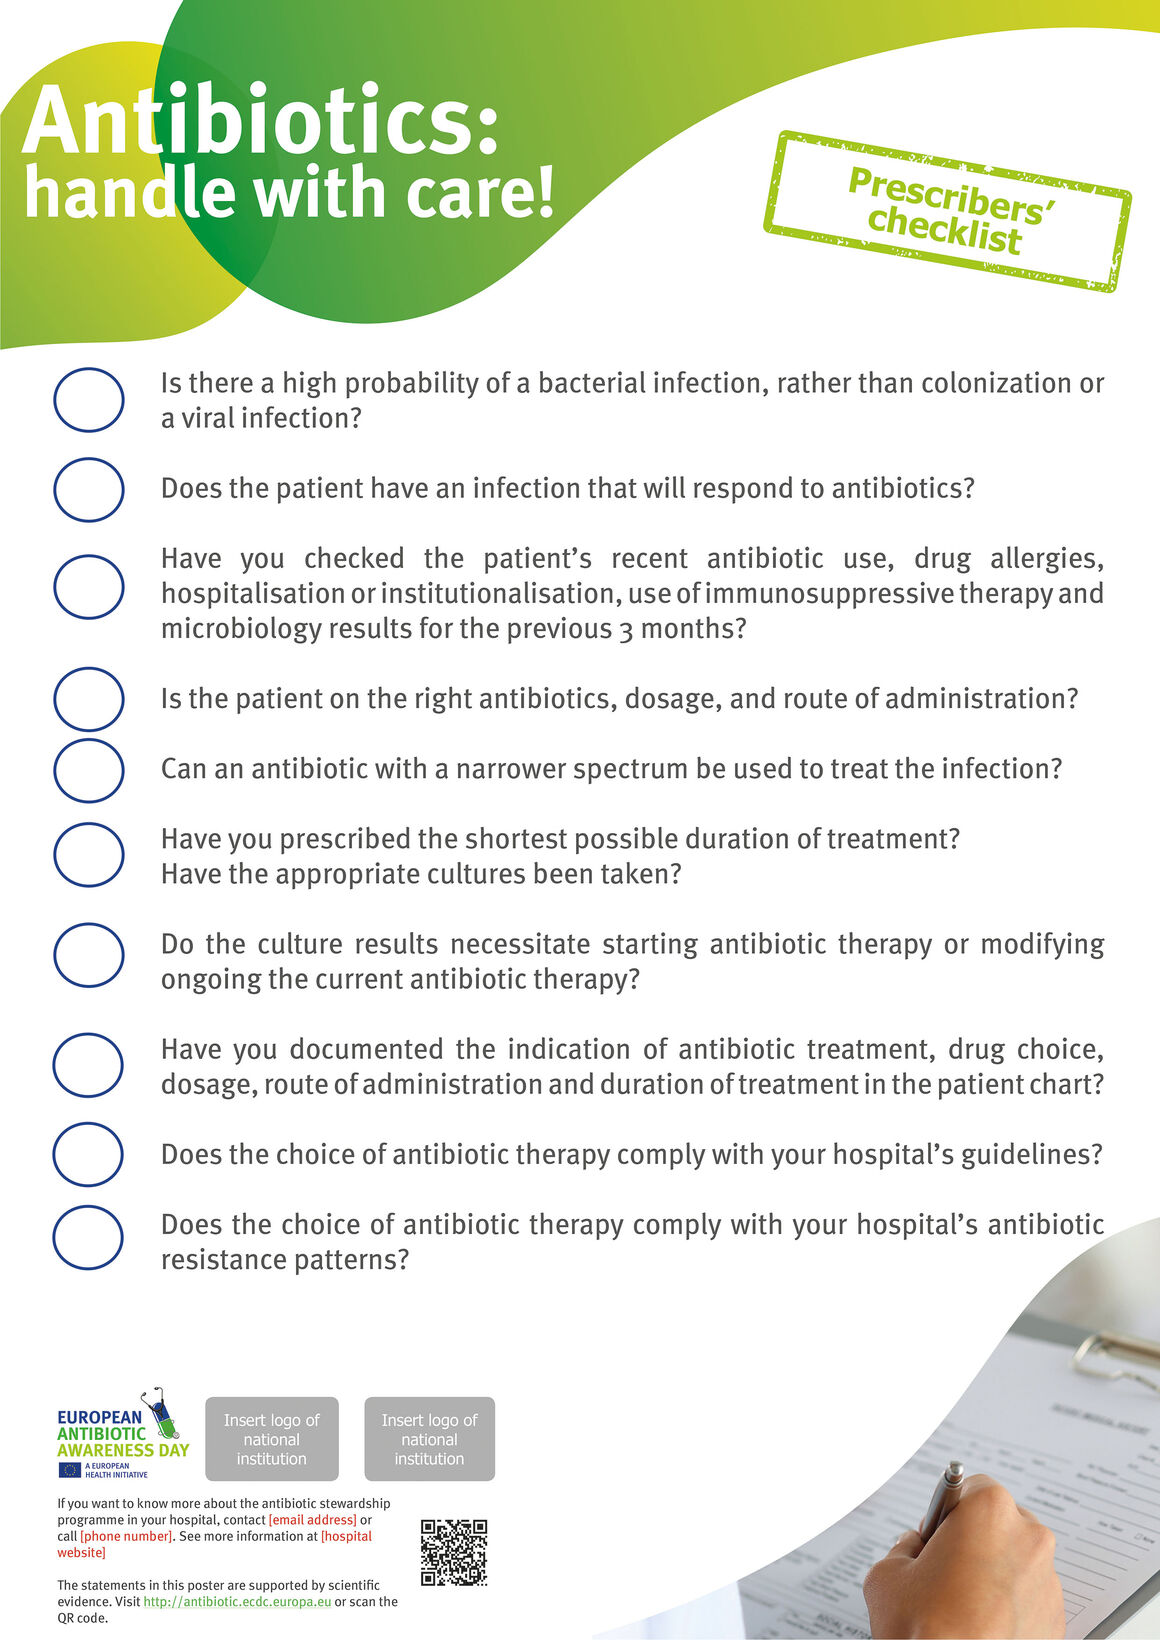 Poster for prescribers in hospitals and healthcare settings: Prescriber's checklist